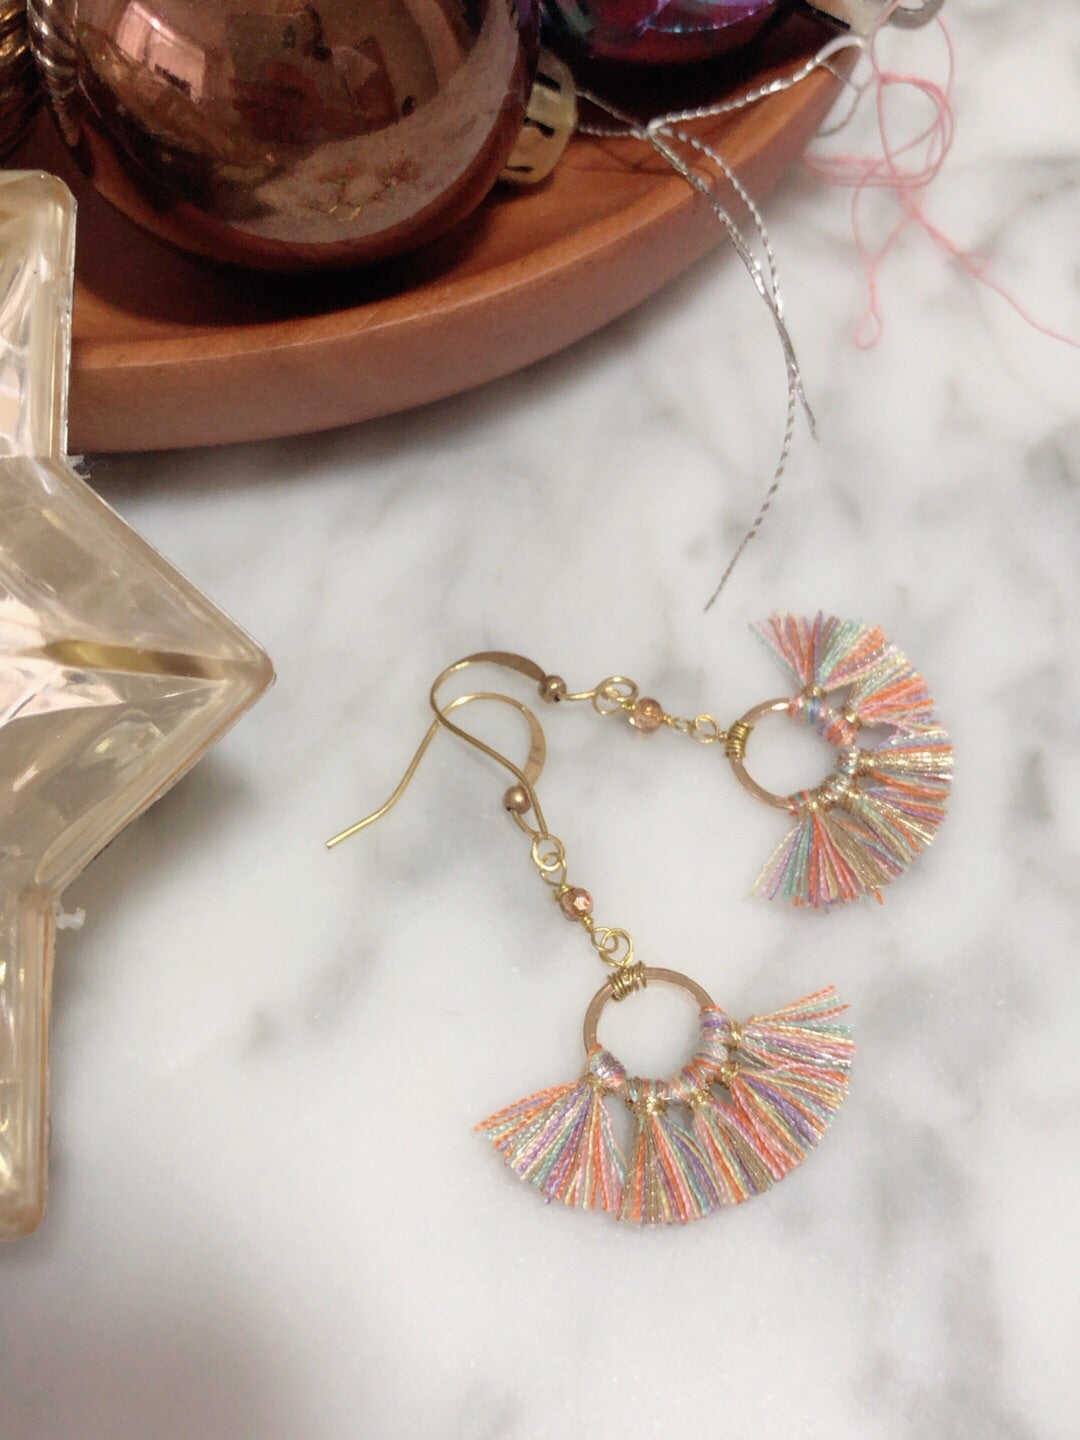 Jani Mullticolour Earrings